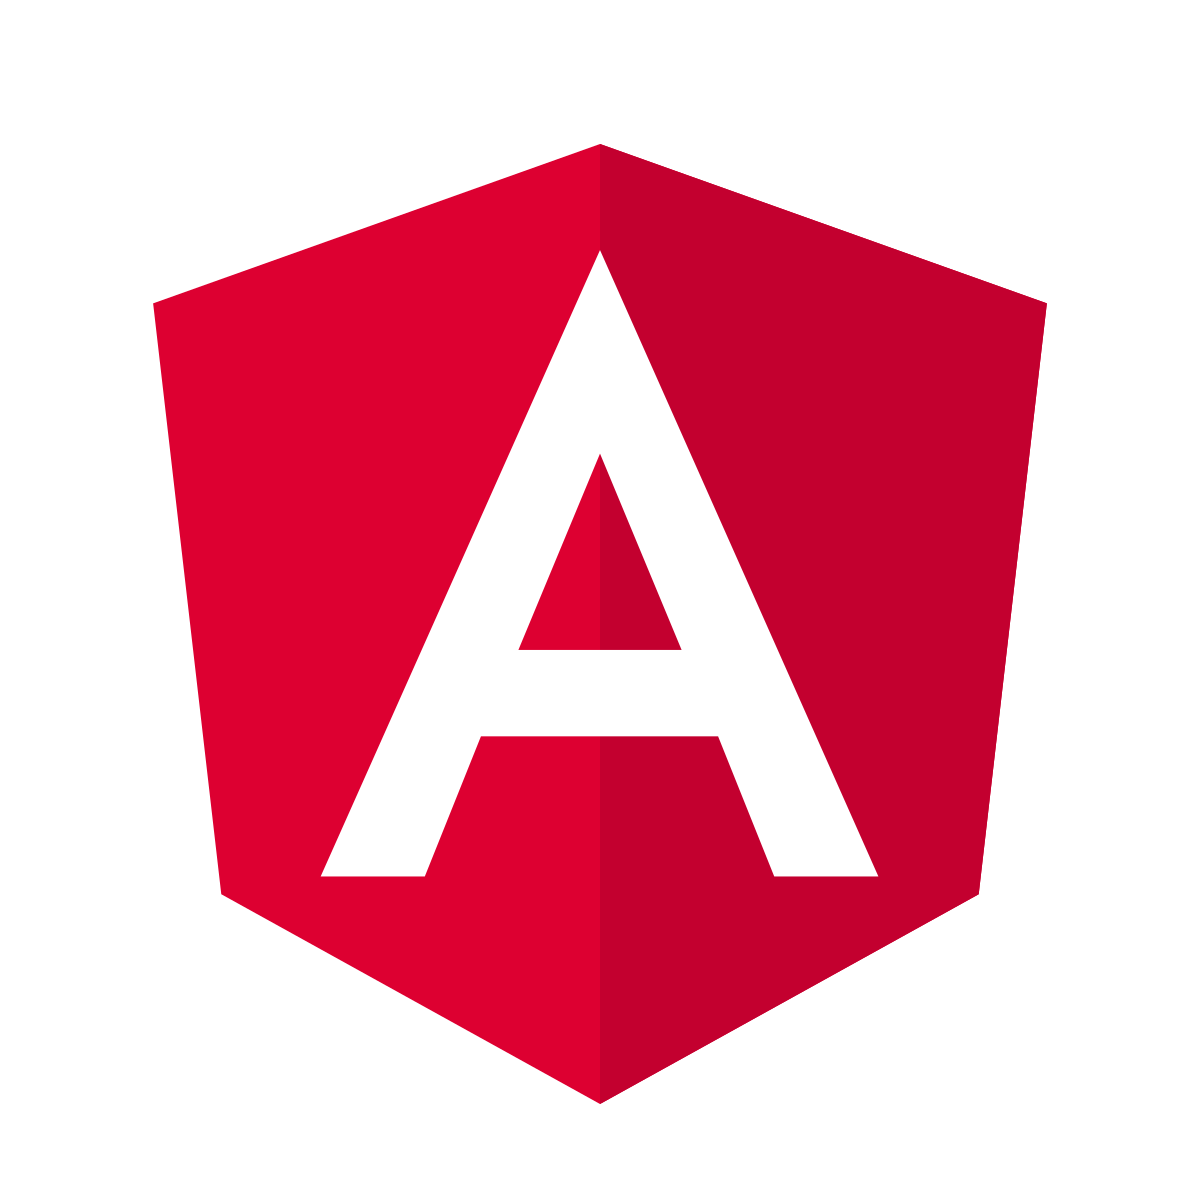 logo of angular as a red and white A